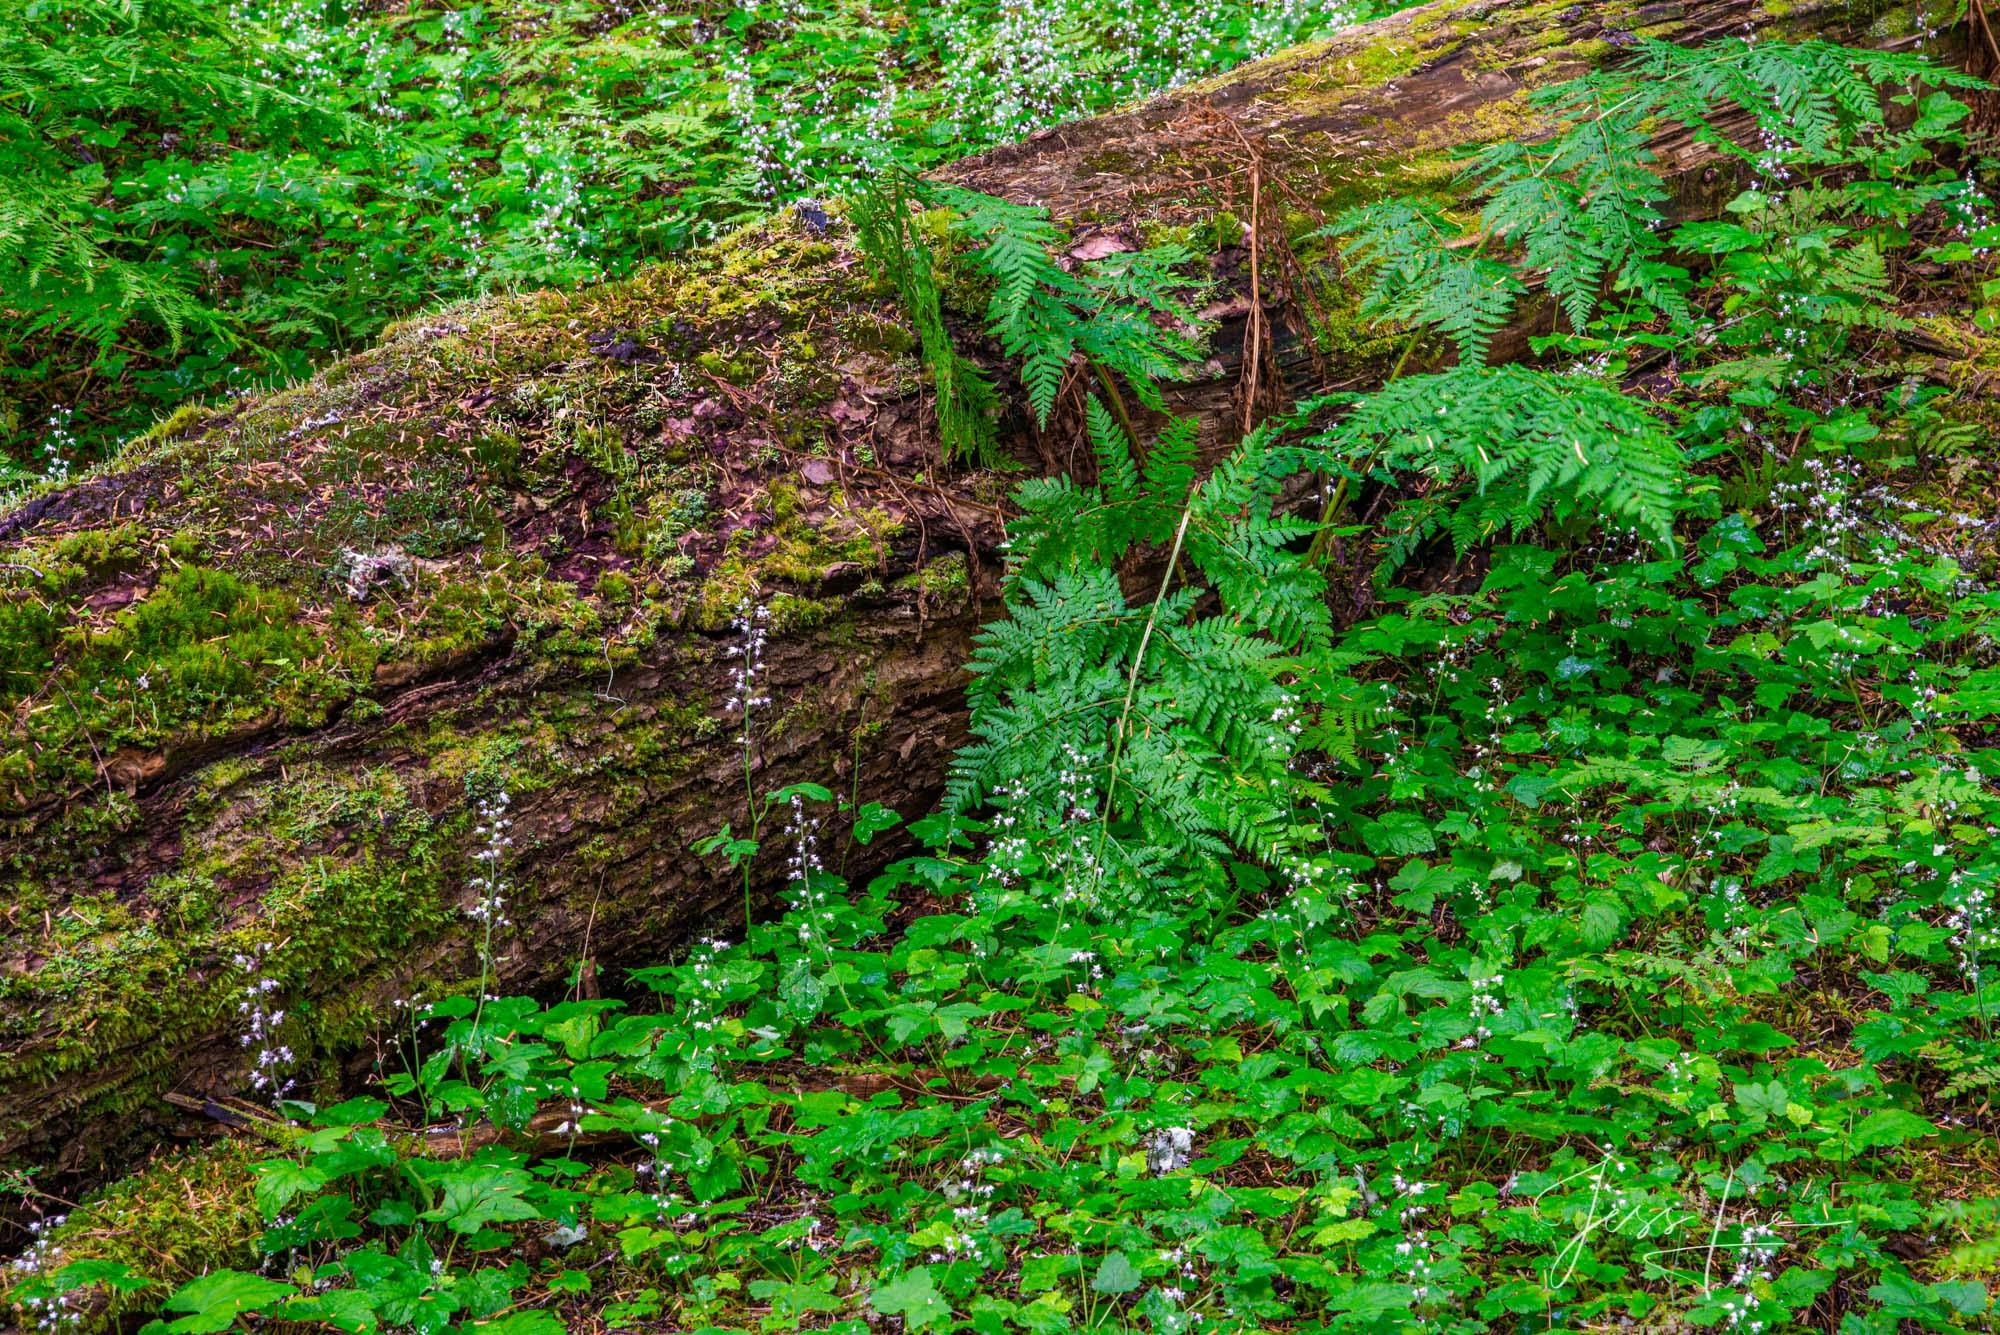 Green Leaves and fallen Tree